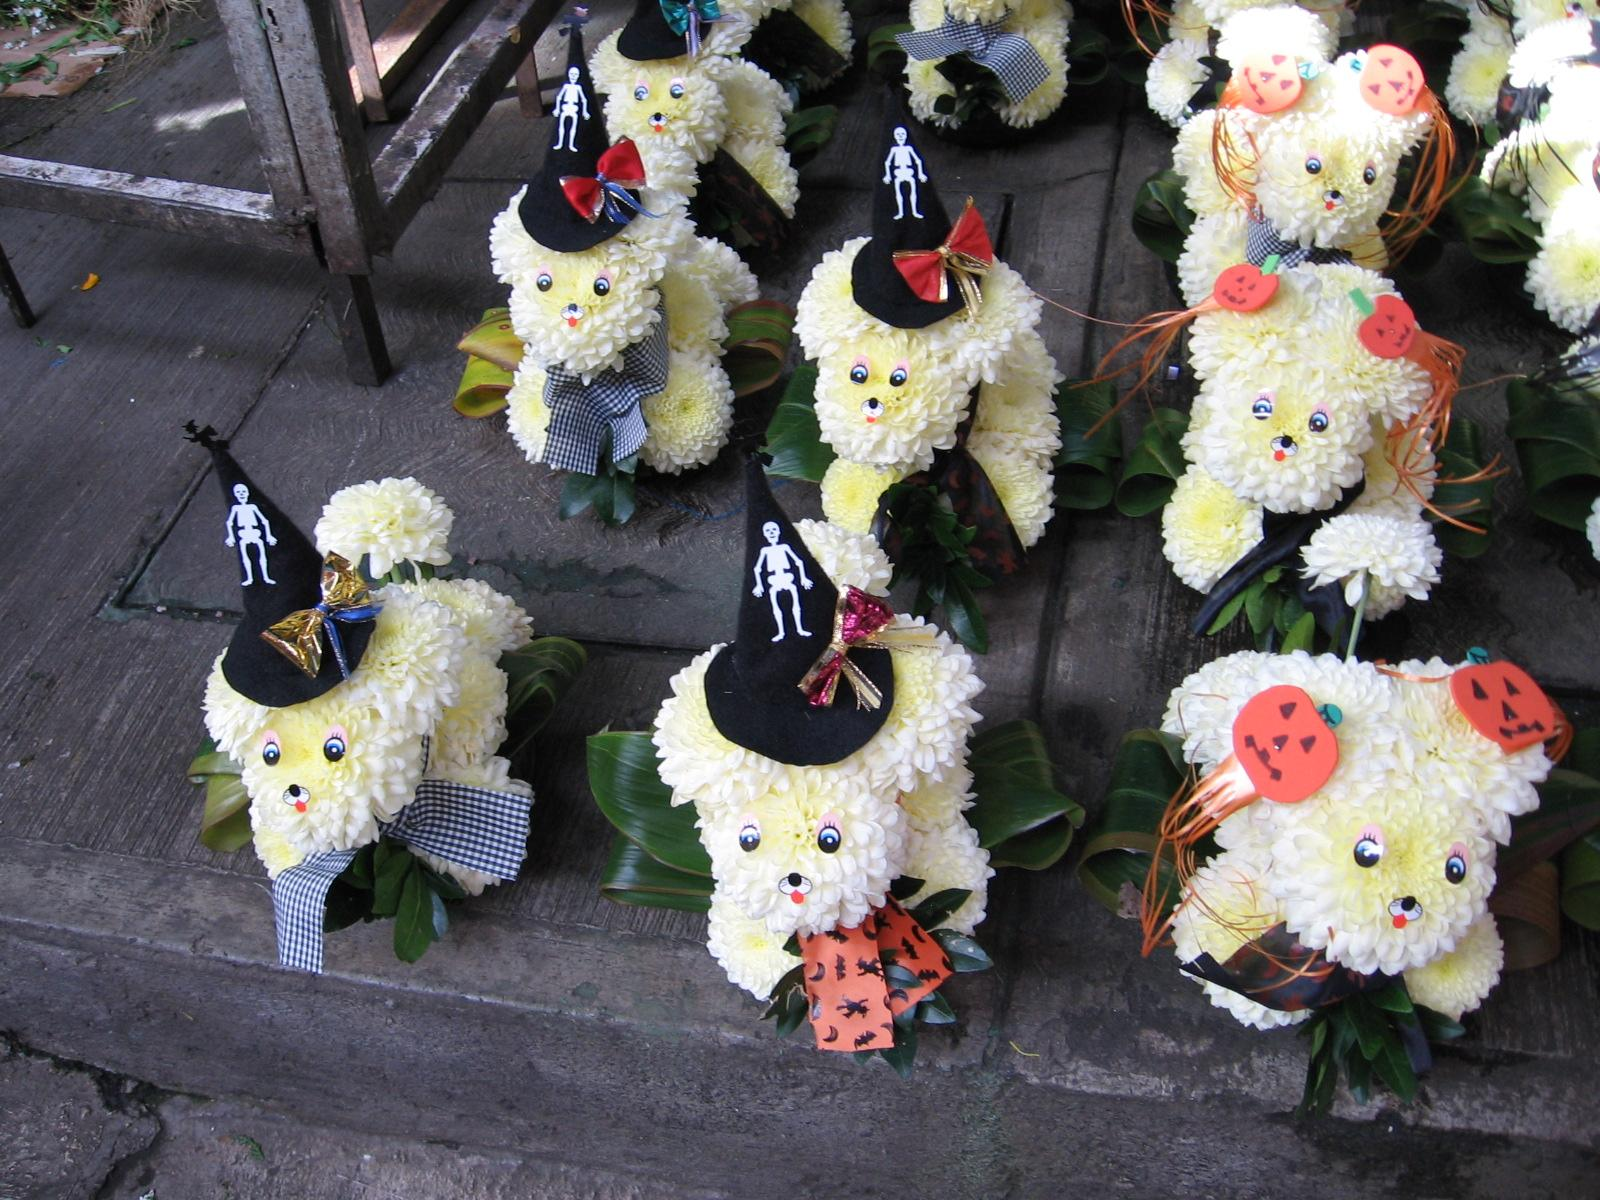 My favorite little white flower dogs from my last visit to Mercado Jamaica were now decked out in their festive Halloween best.